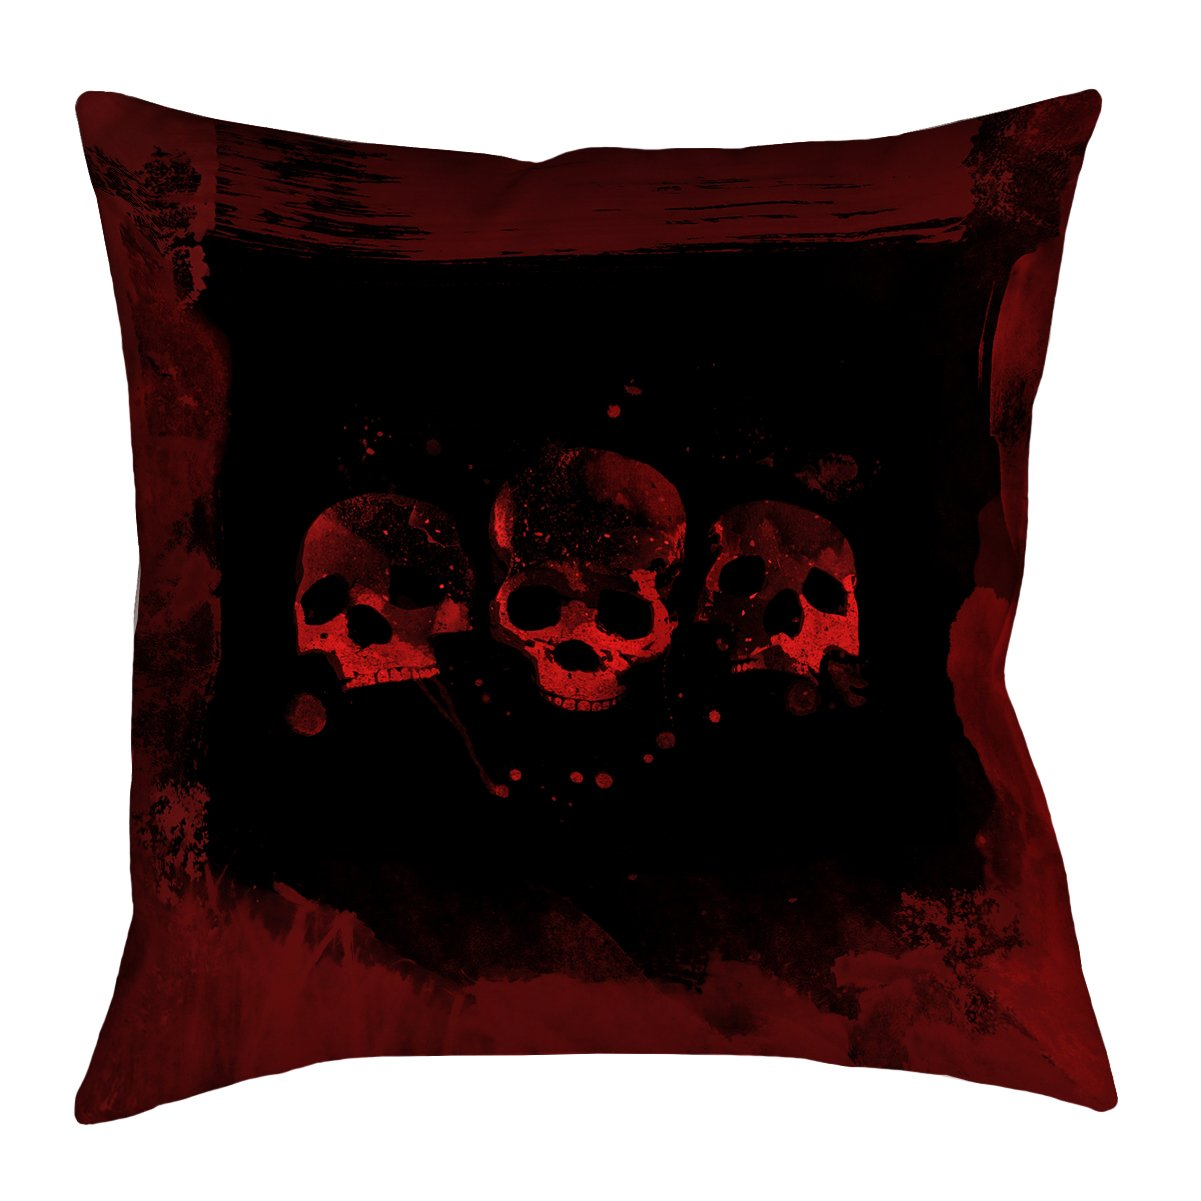 ArtVerse Katelyn Smith 20' x 20' Outdoor Cushions UV Properties + Waterproof and Mildew Proof Spooky Watercolor Skulls Pillow